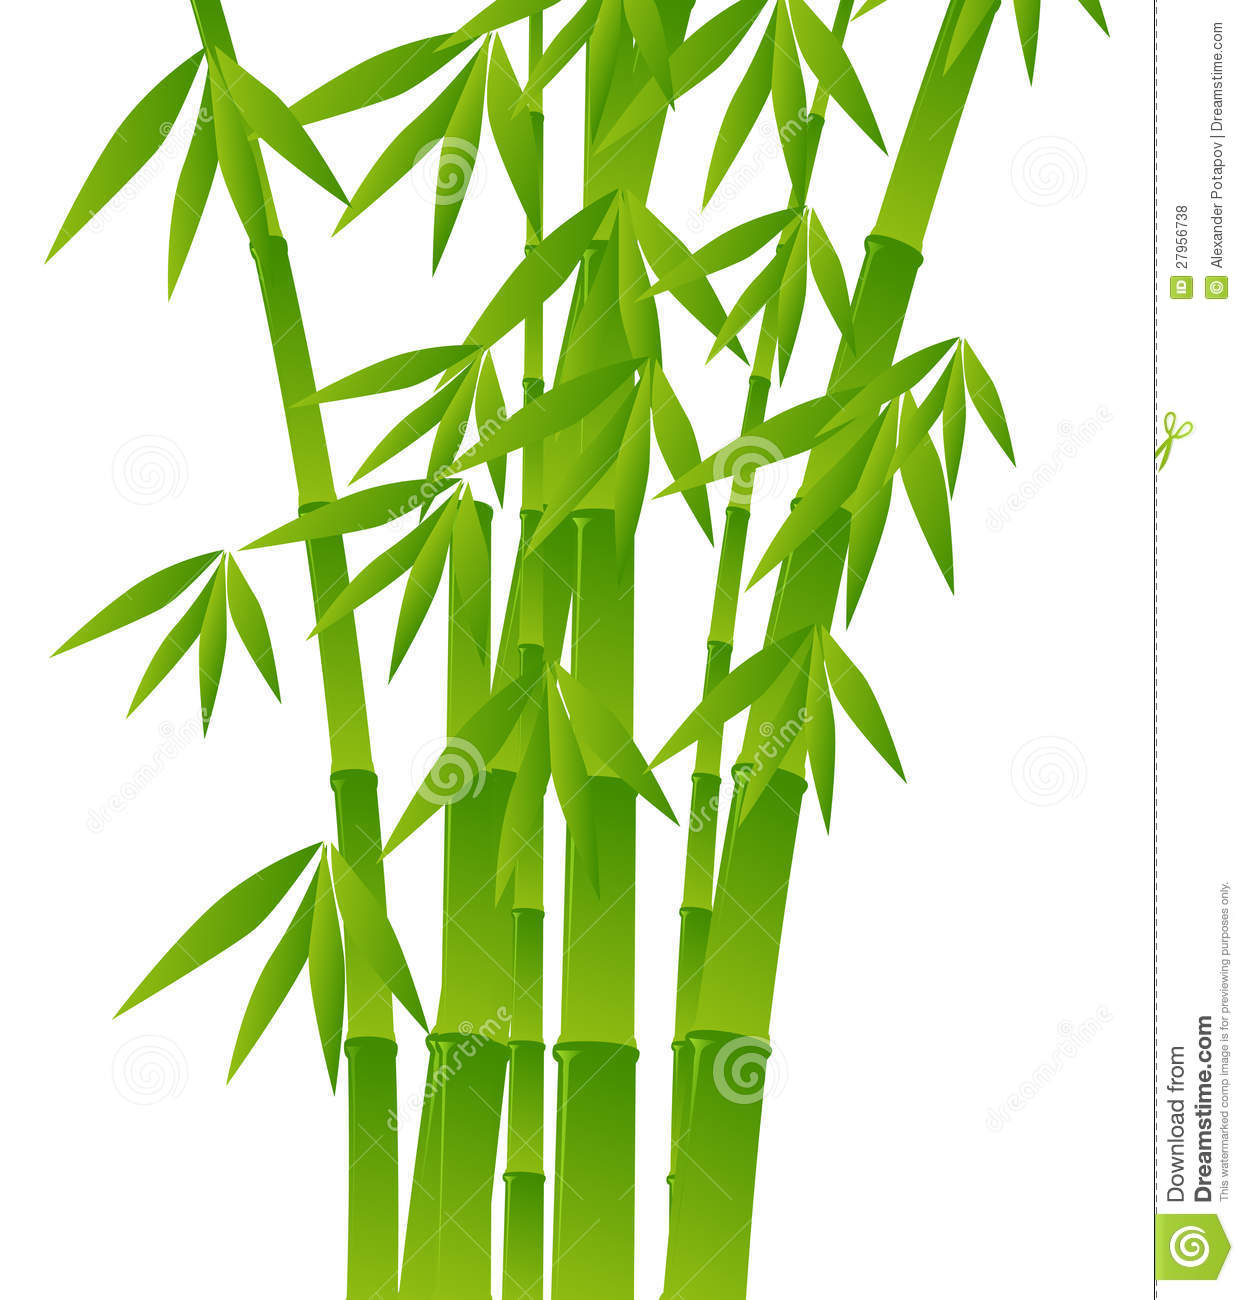 Bamboo trees clipart clipground